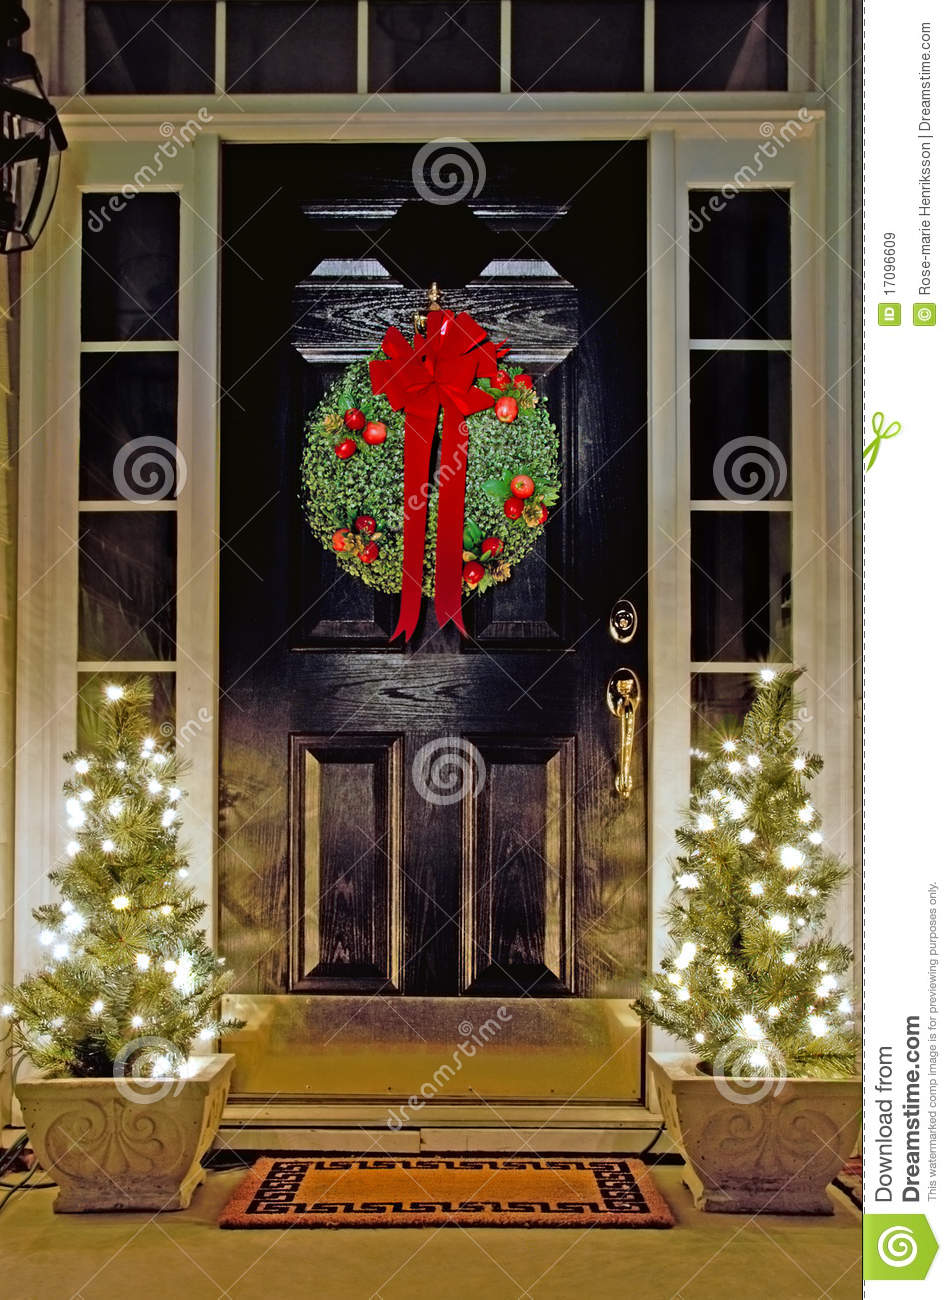 Christmas Front Door. Cool Christmas Front Door Decorations Home.